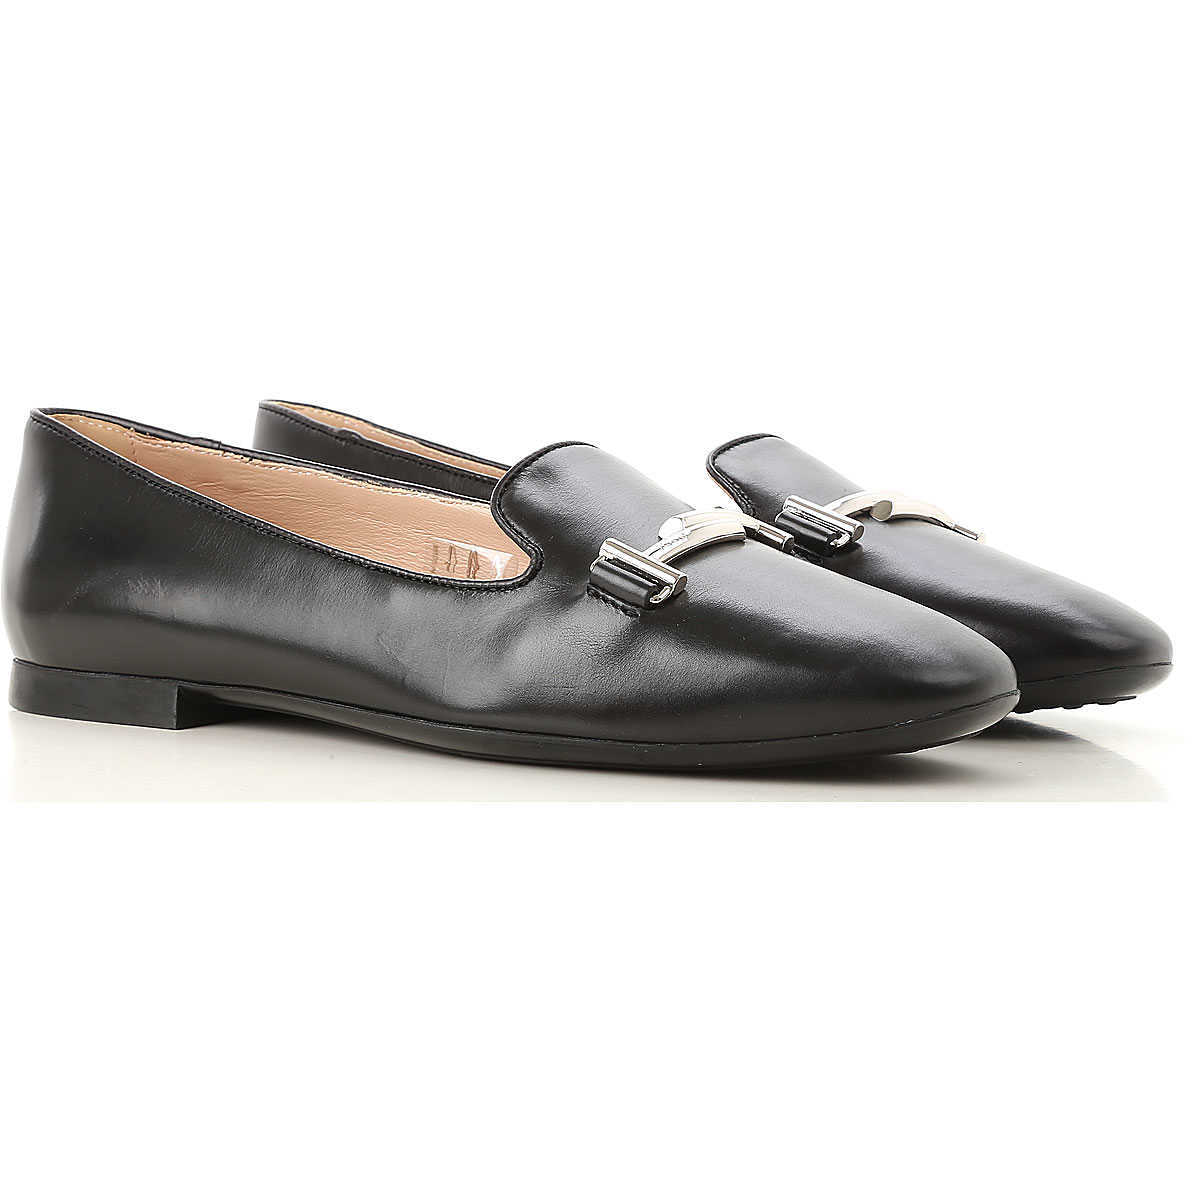 Tods Loafers for Women On Sale Black - GOOFASH